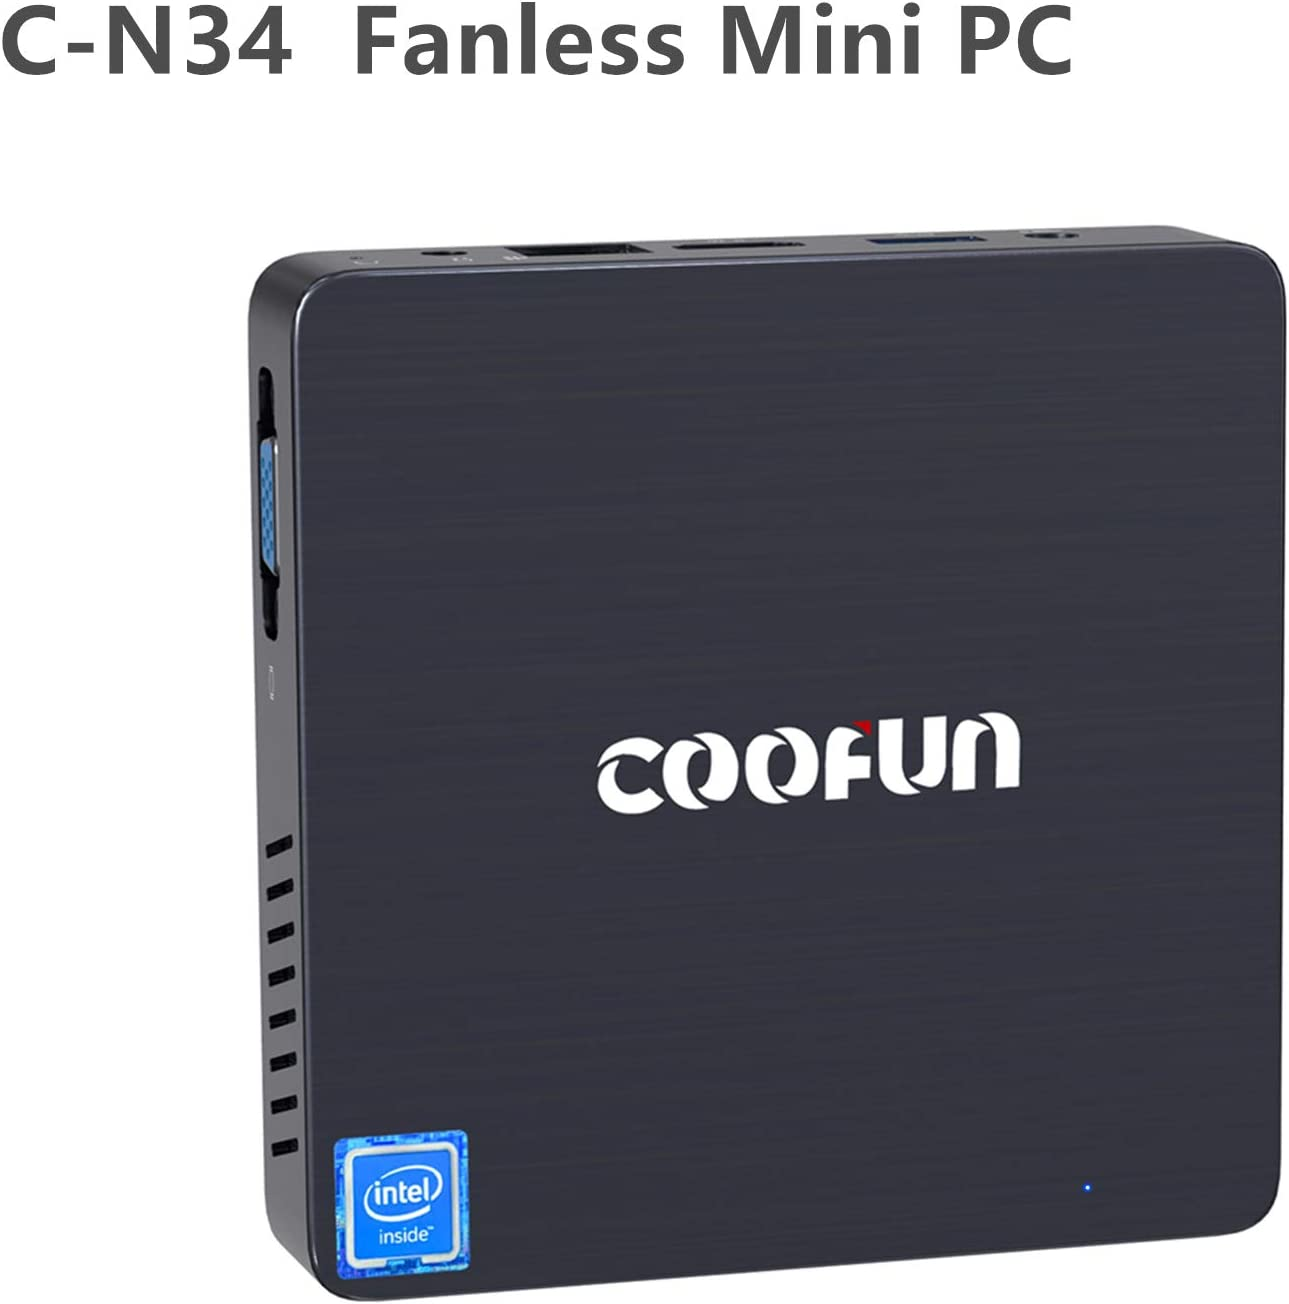 COOFUN Fanless Mini PC 4GB LPDDR4/ 64GB eMMC Windows 10 Quad Core Intel Celeron N3450 Processor Desktop Computer HDMI/VGA Port Support 2242 SSD,BT 4.2,3X USB 3.0,Auto Power on,Linux